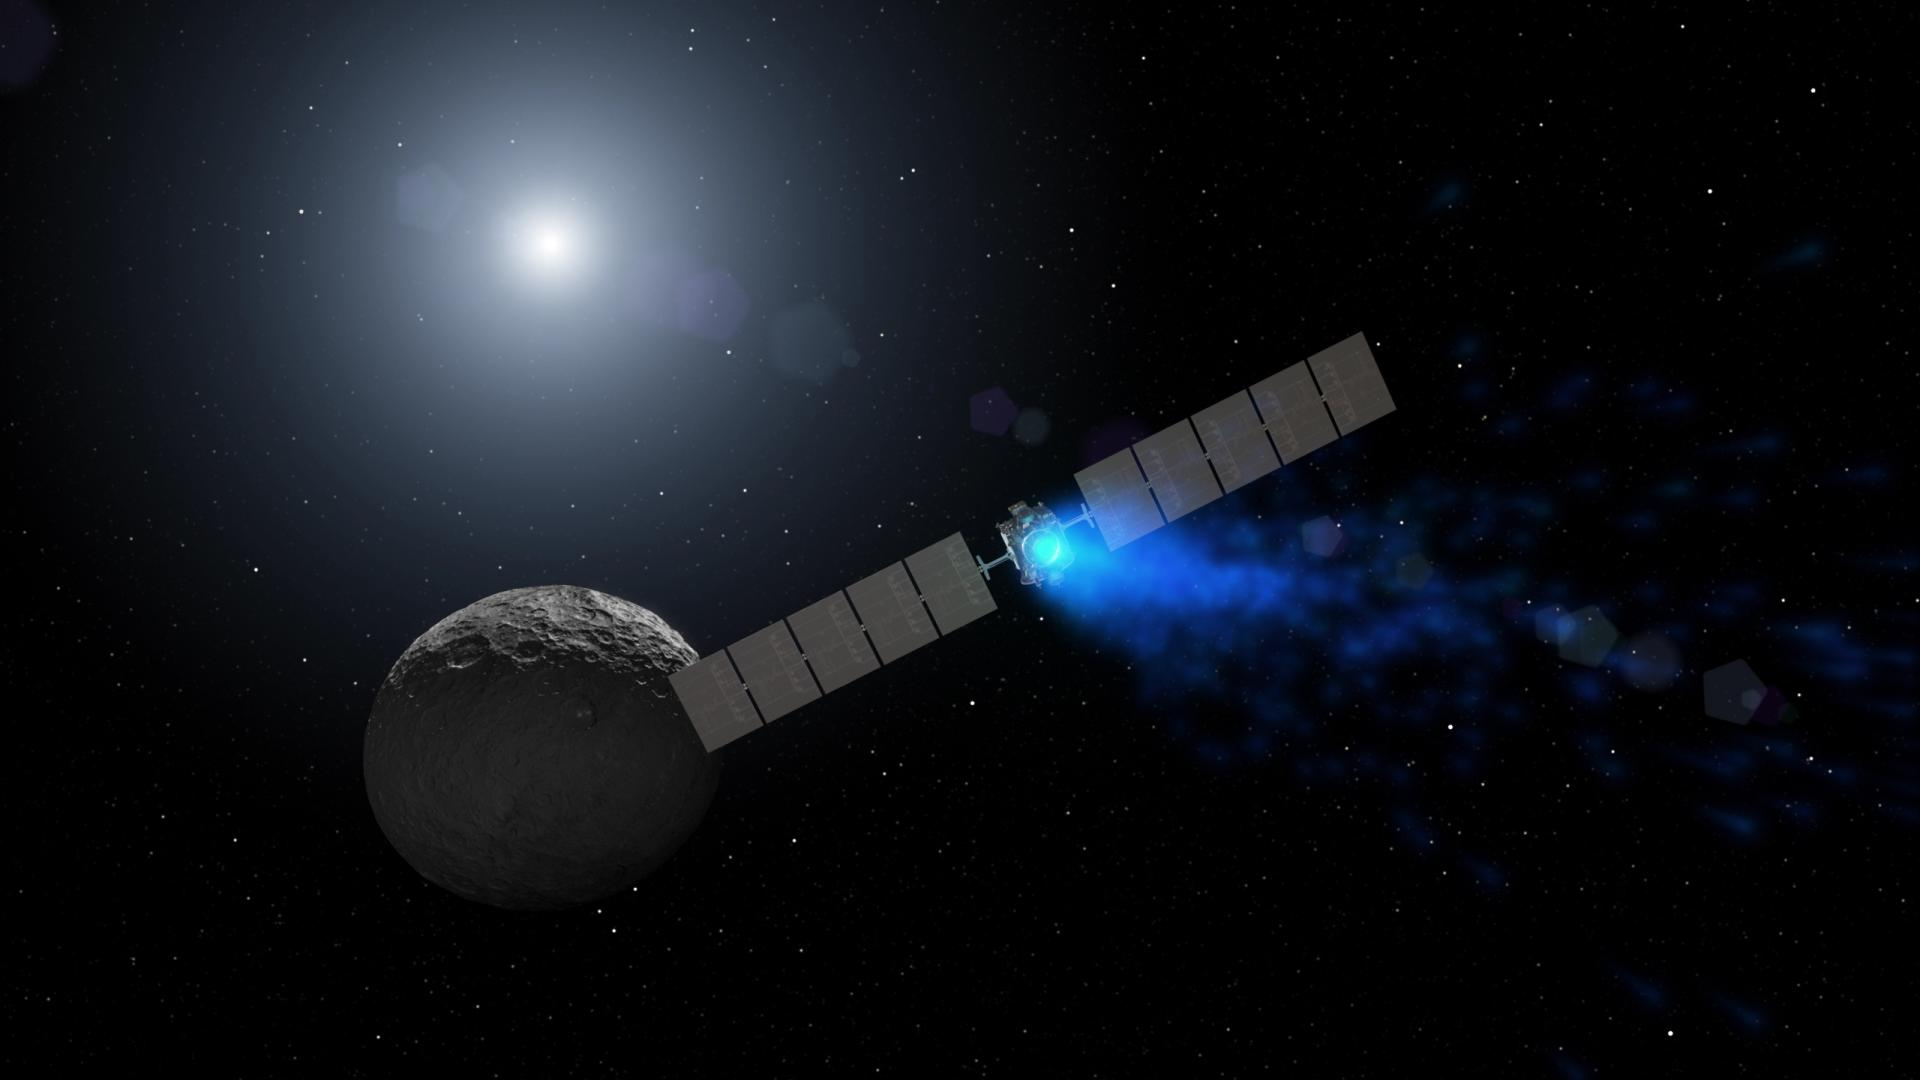 Artist's concept of NASA's Dawn mission at dwarf planet Ceres.